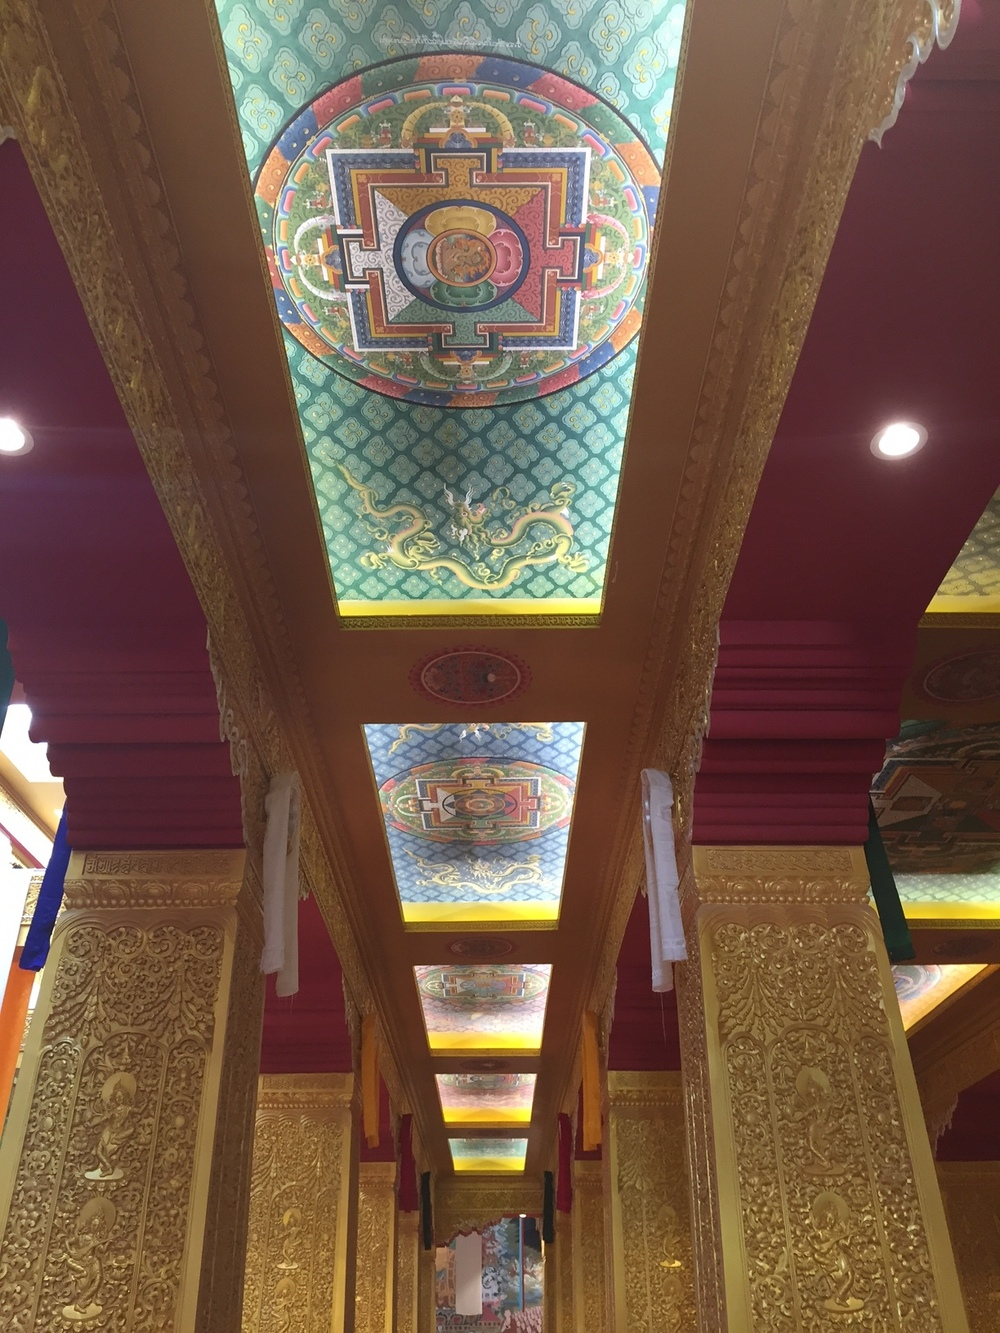 Looking up at the ceiling of the Buddhist temple supporting this gigantic Buddha statue.